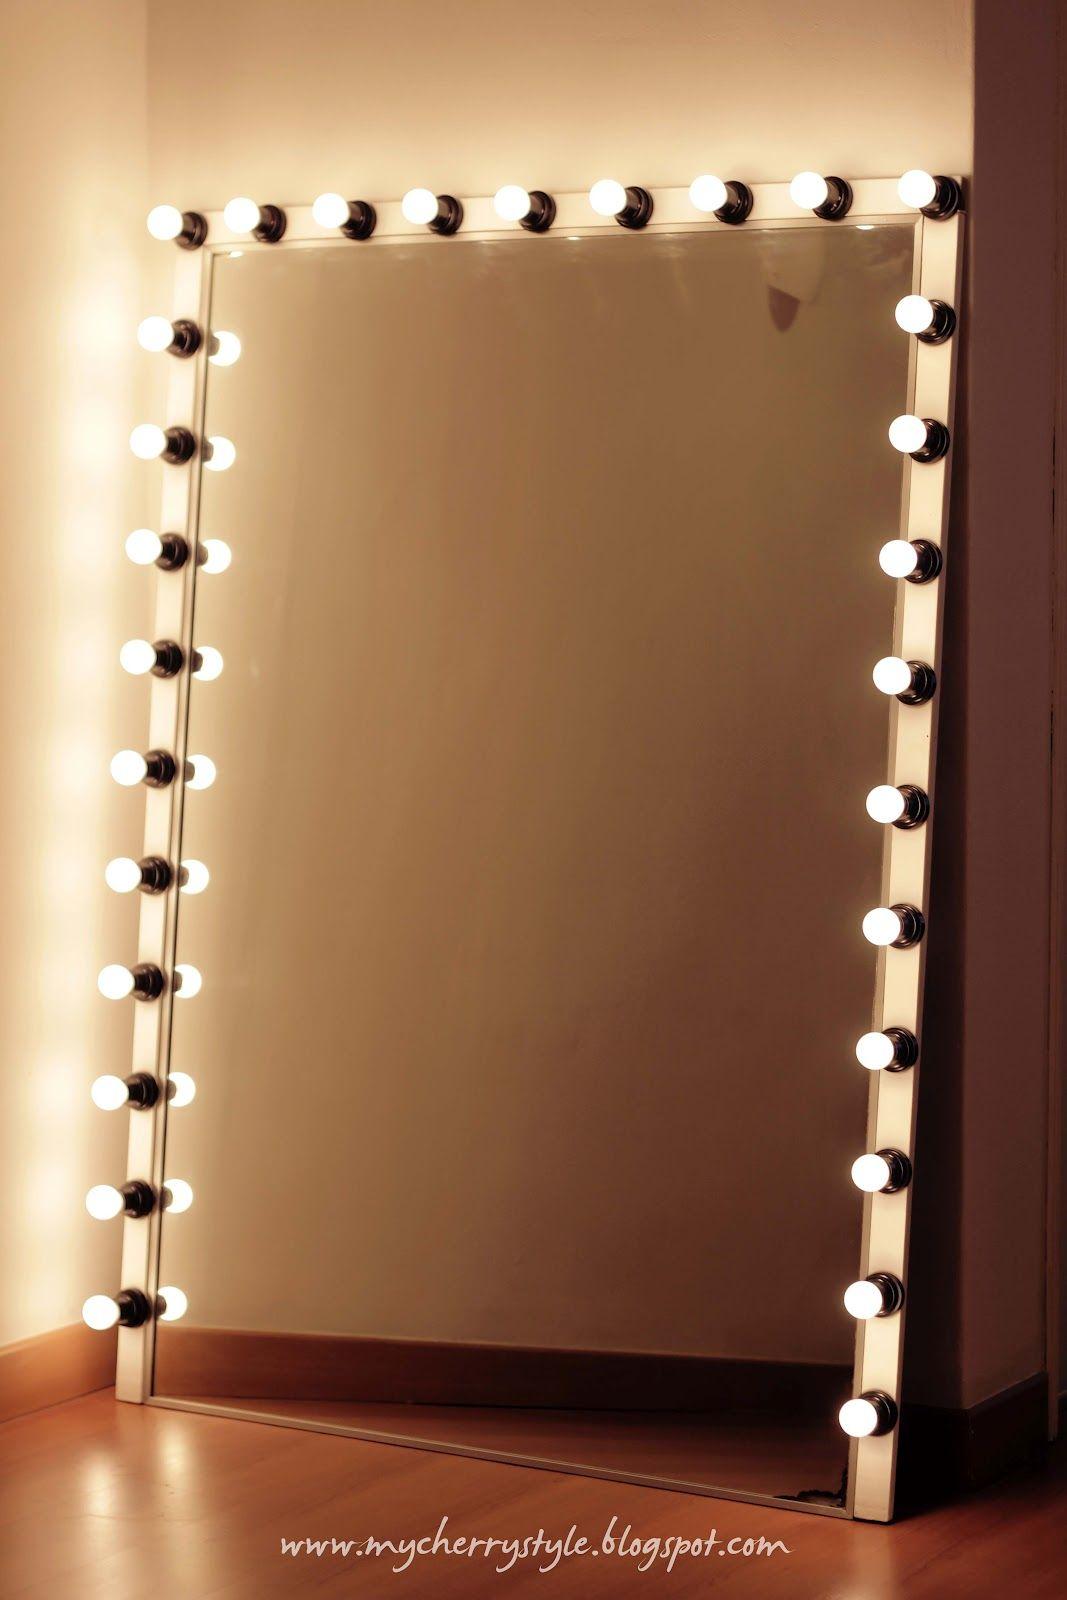 Big Vanity Mirror With Lights New Diy Hollywoodstyle Mirror With Lights Tutorial From Scratchfor Inspiration Design